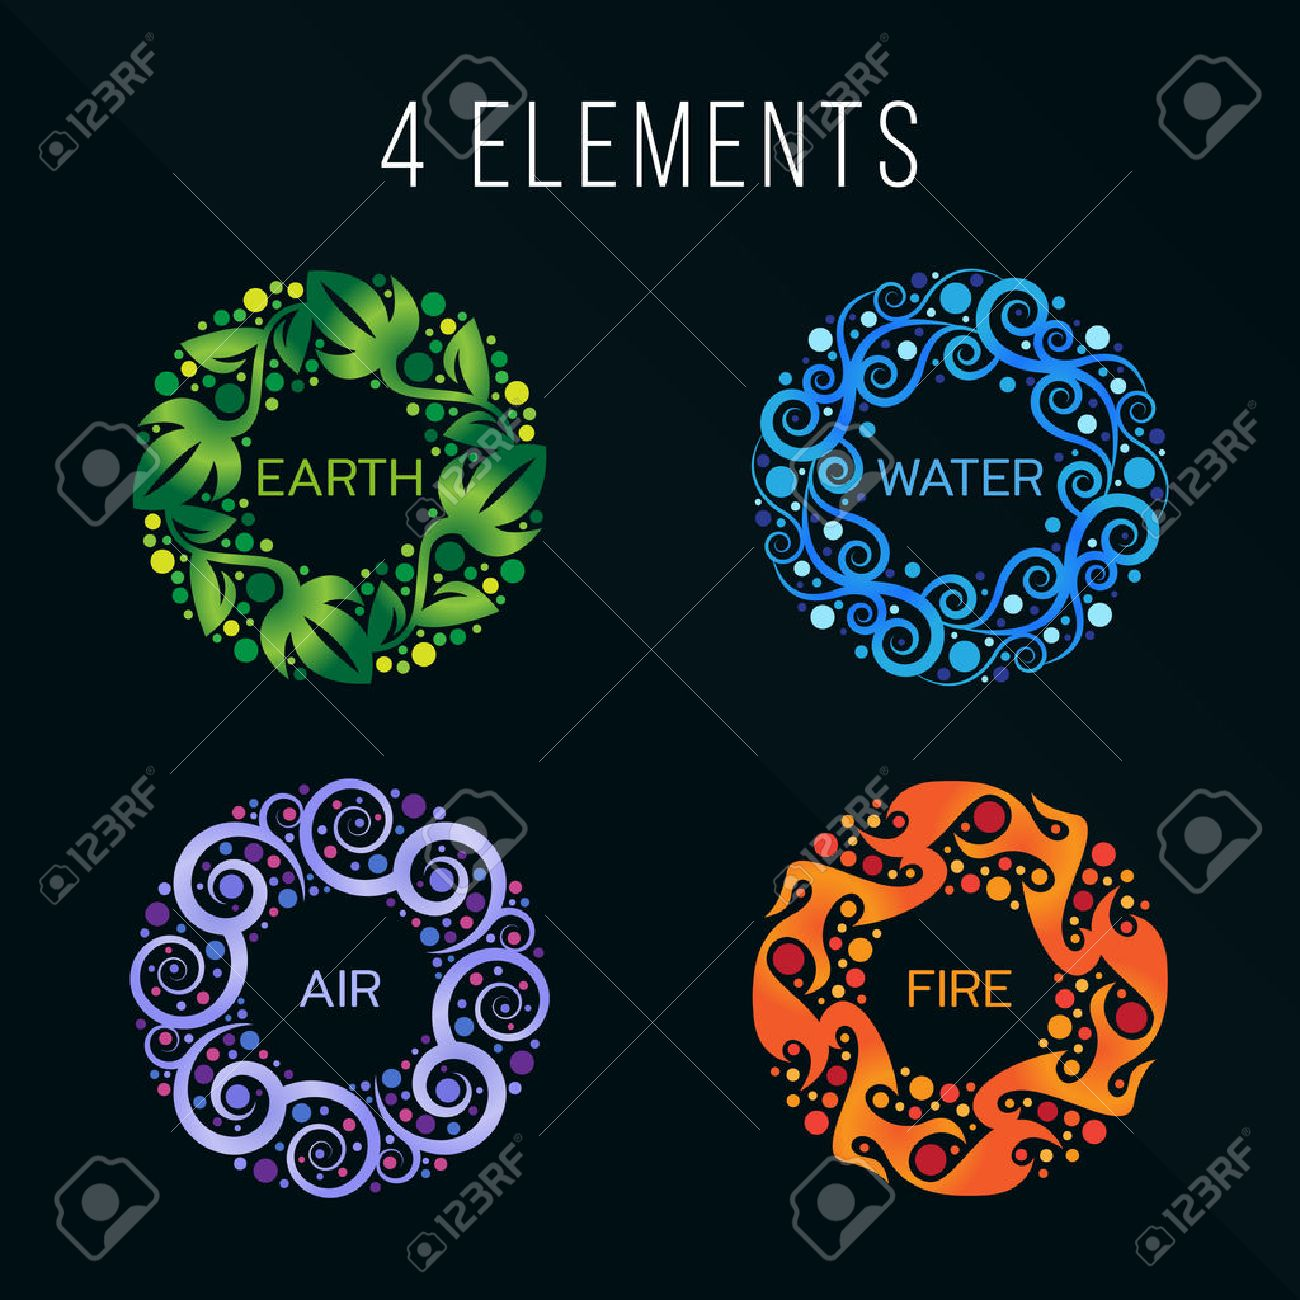 Nature 4 elements circle abstract sign. Water, Fire, Earth, Air. on dark background. - 63507294